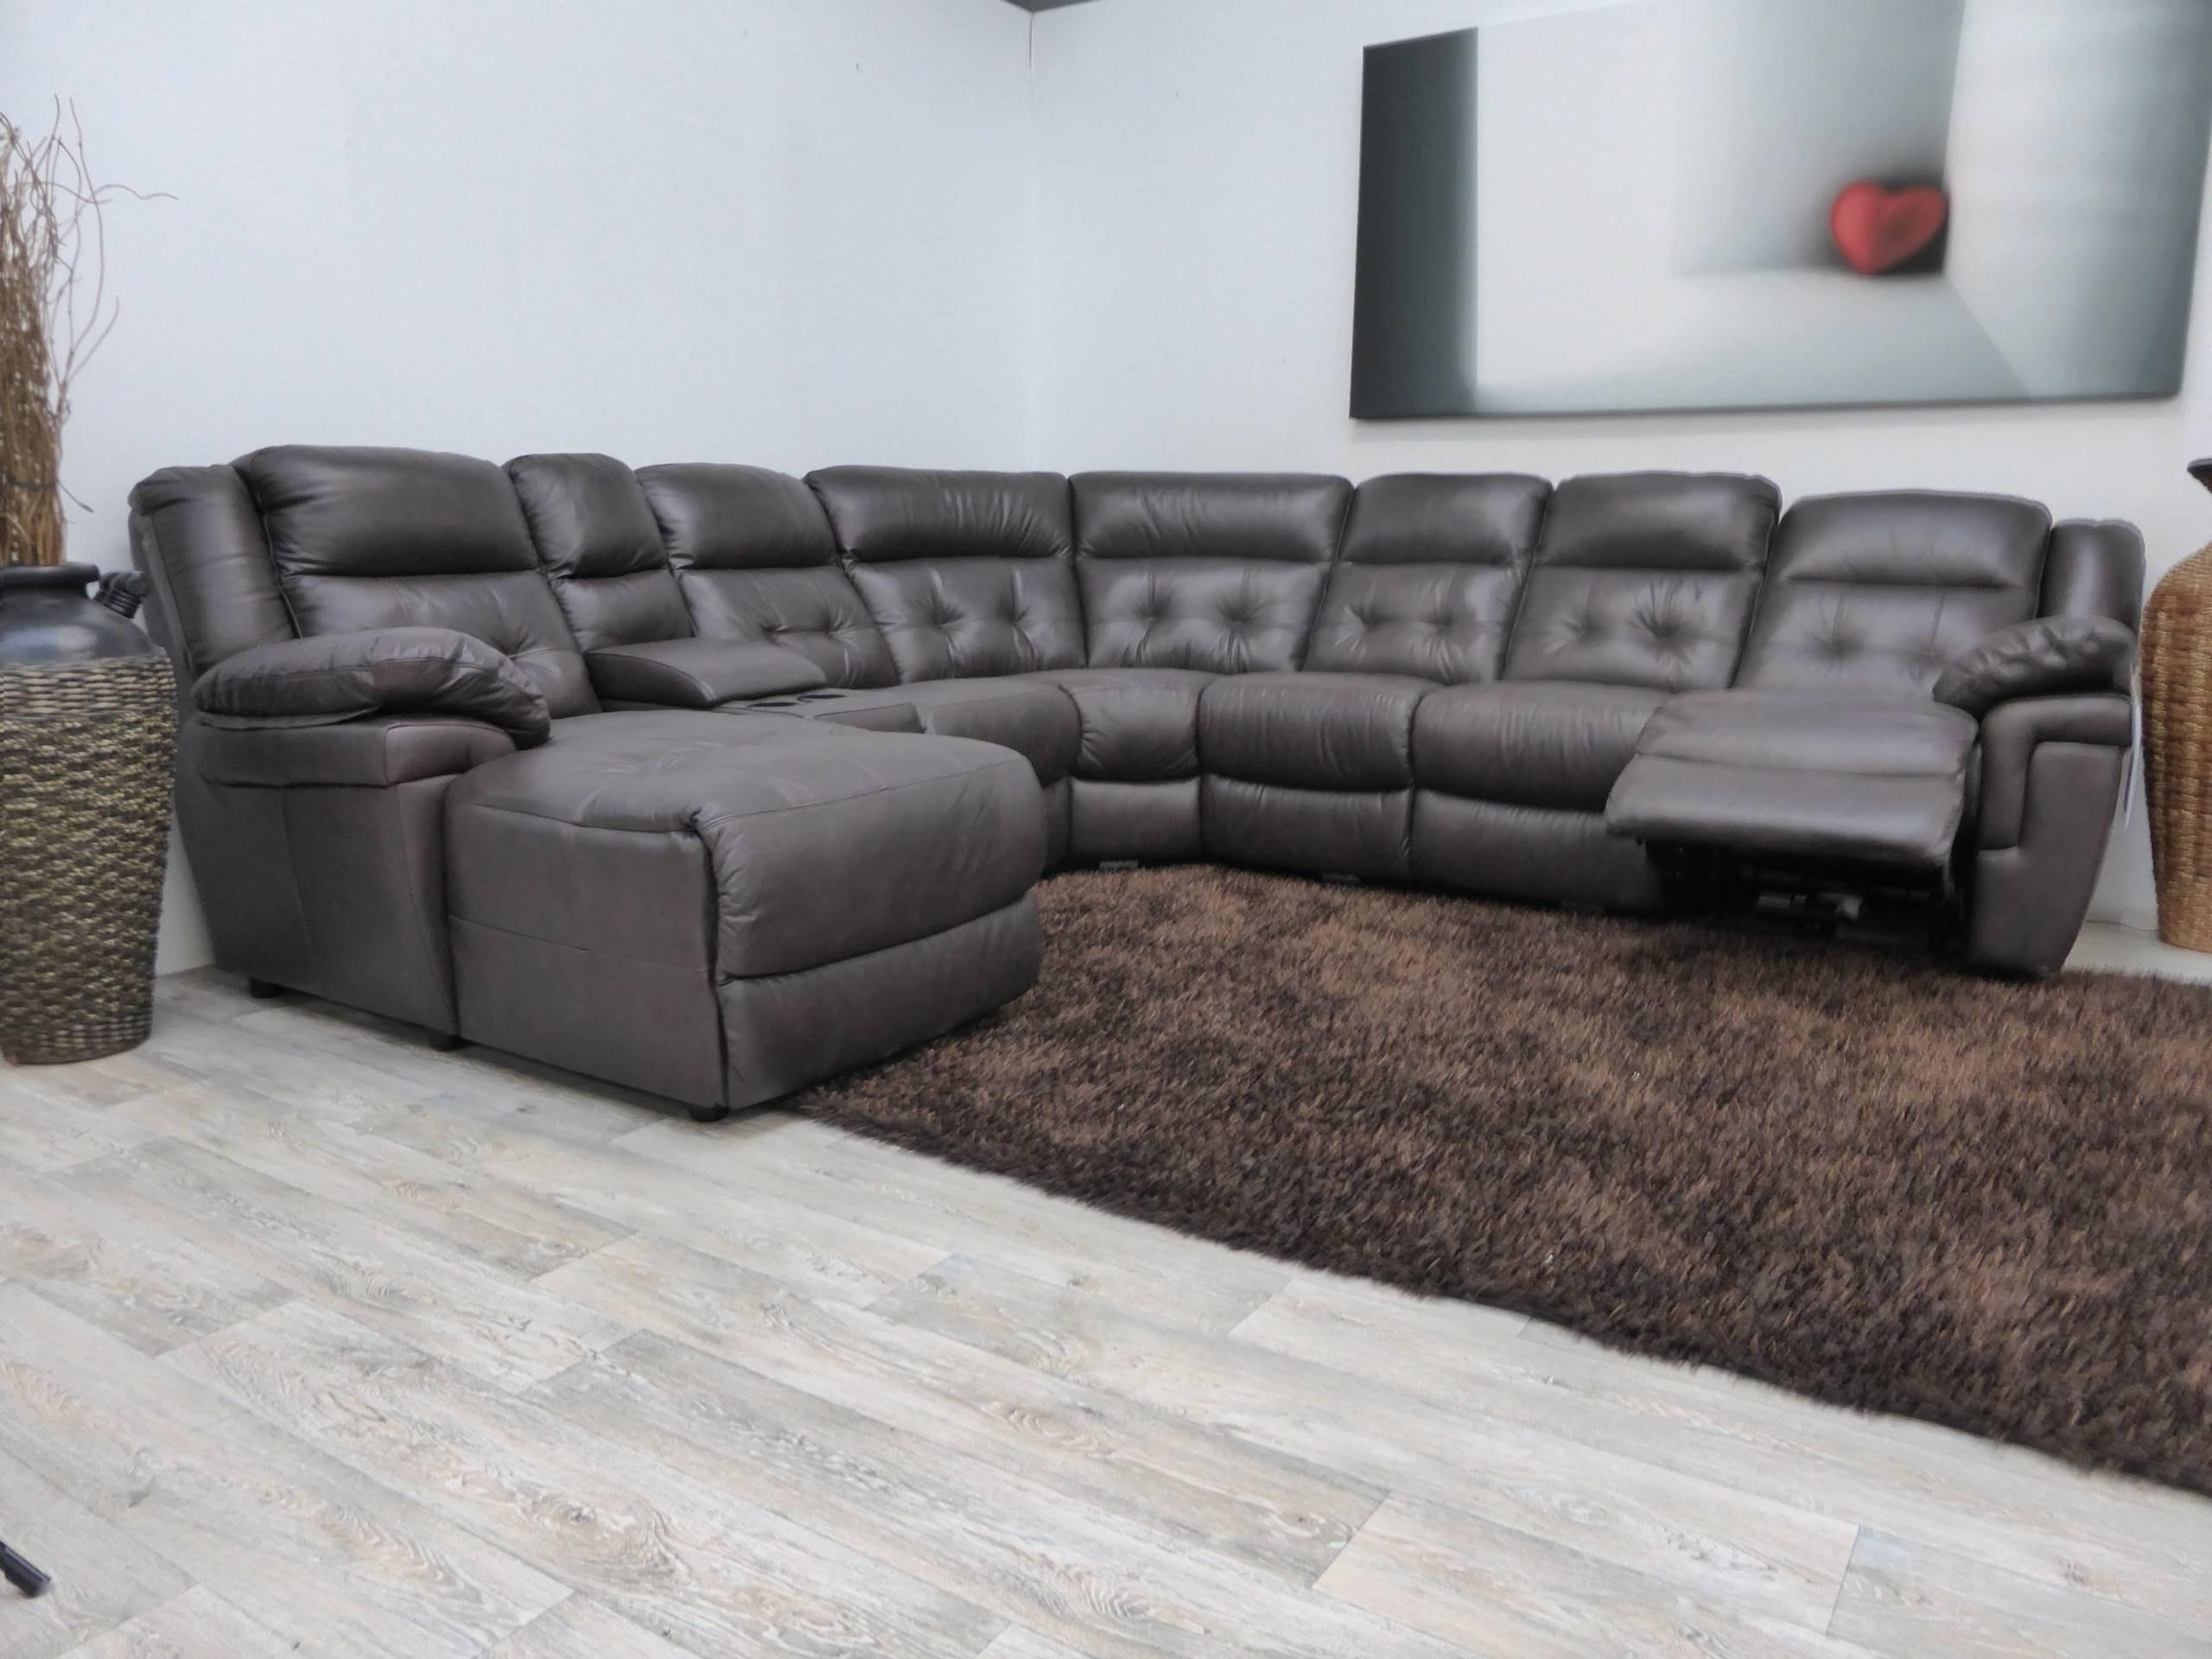 Gilbert Az Sectional Sofas Within Recent Furniture : Craigslist Ma Furnitureowner Luxury Sectional Sofa (View 20 of 20)